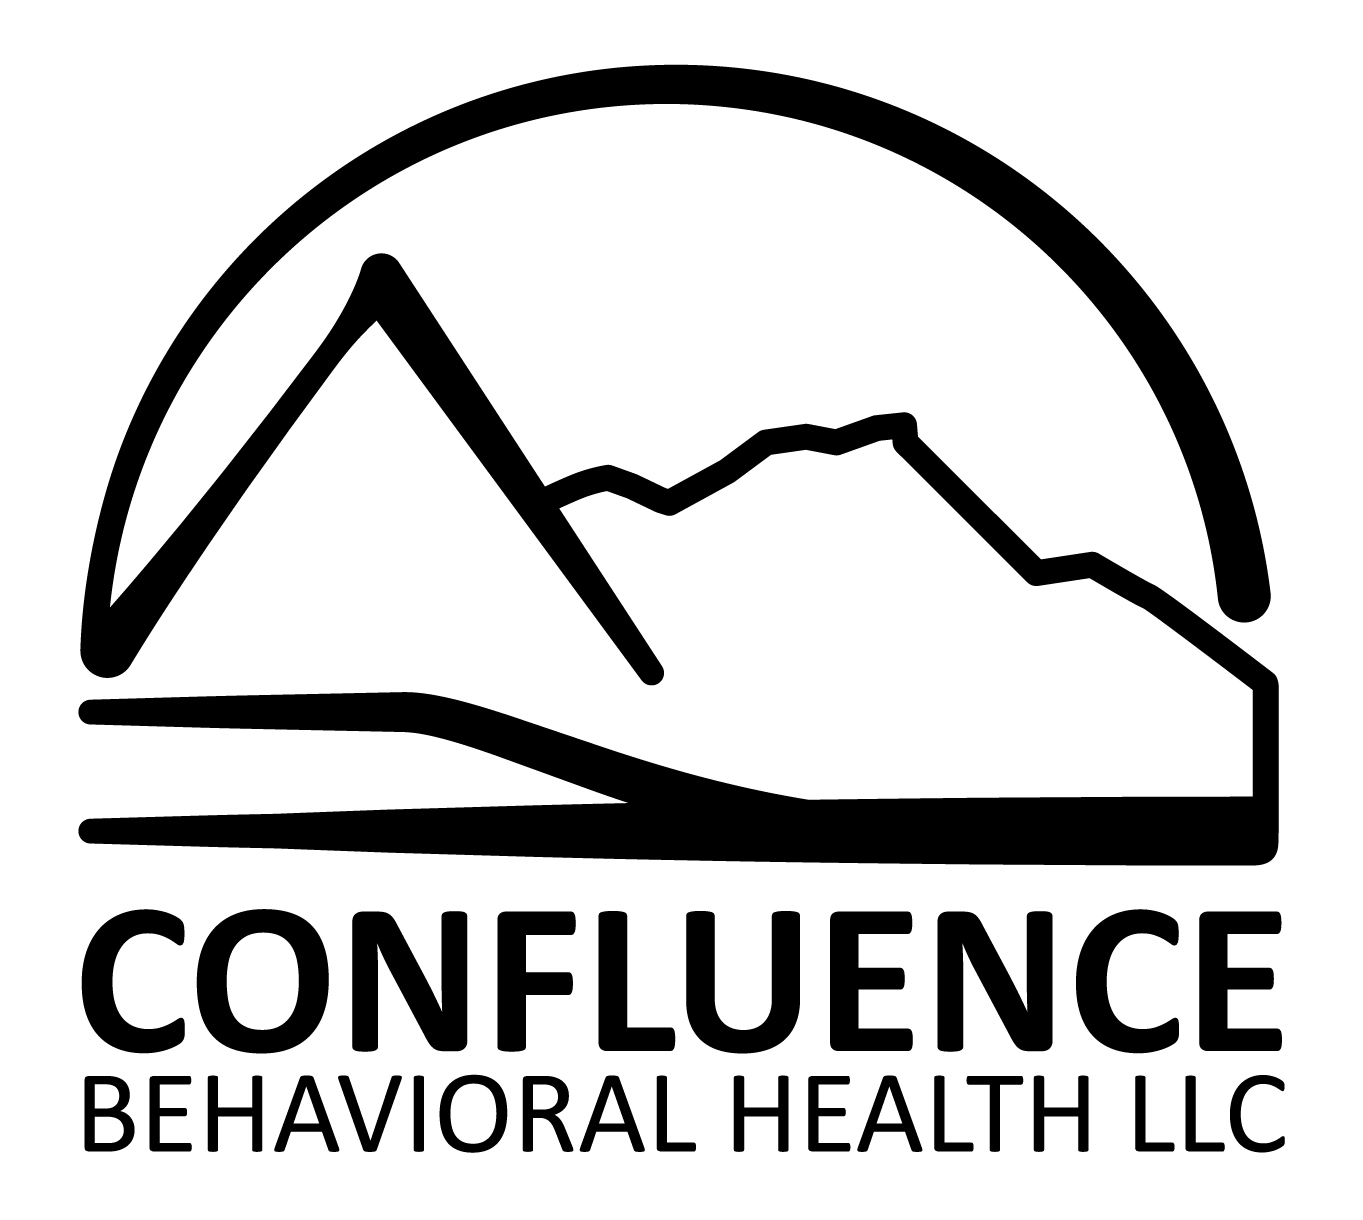 Confluence Behavioral Health, LLC logo